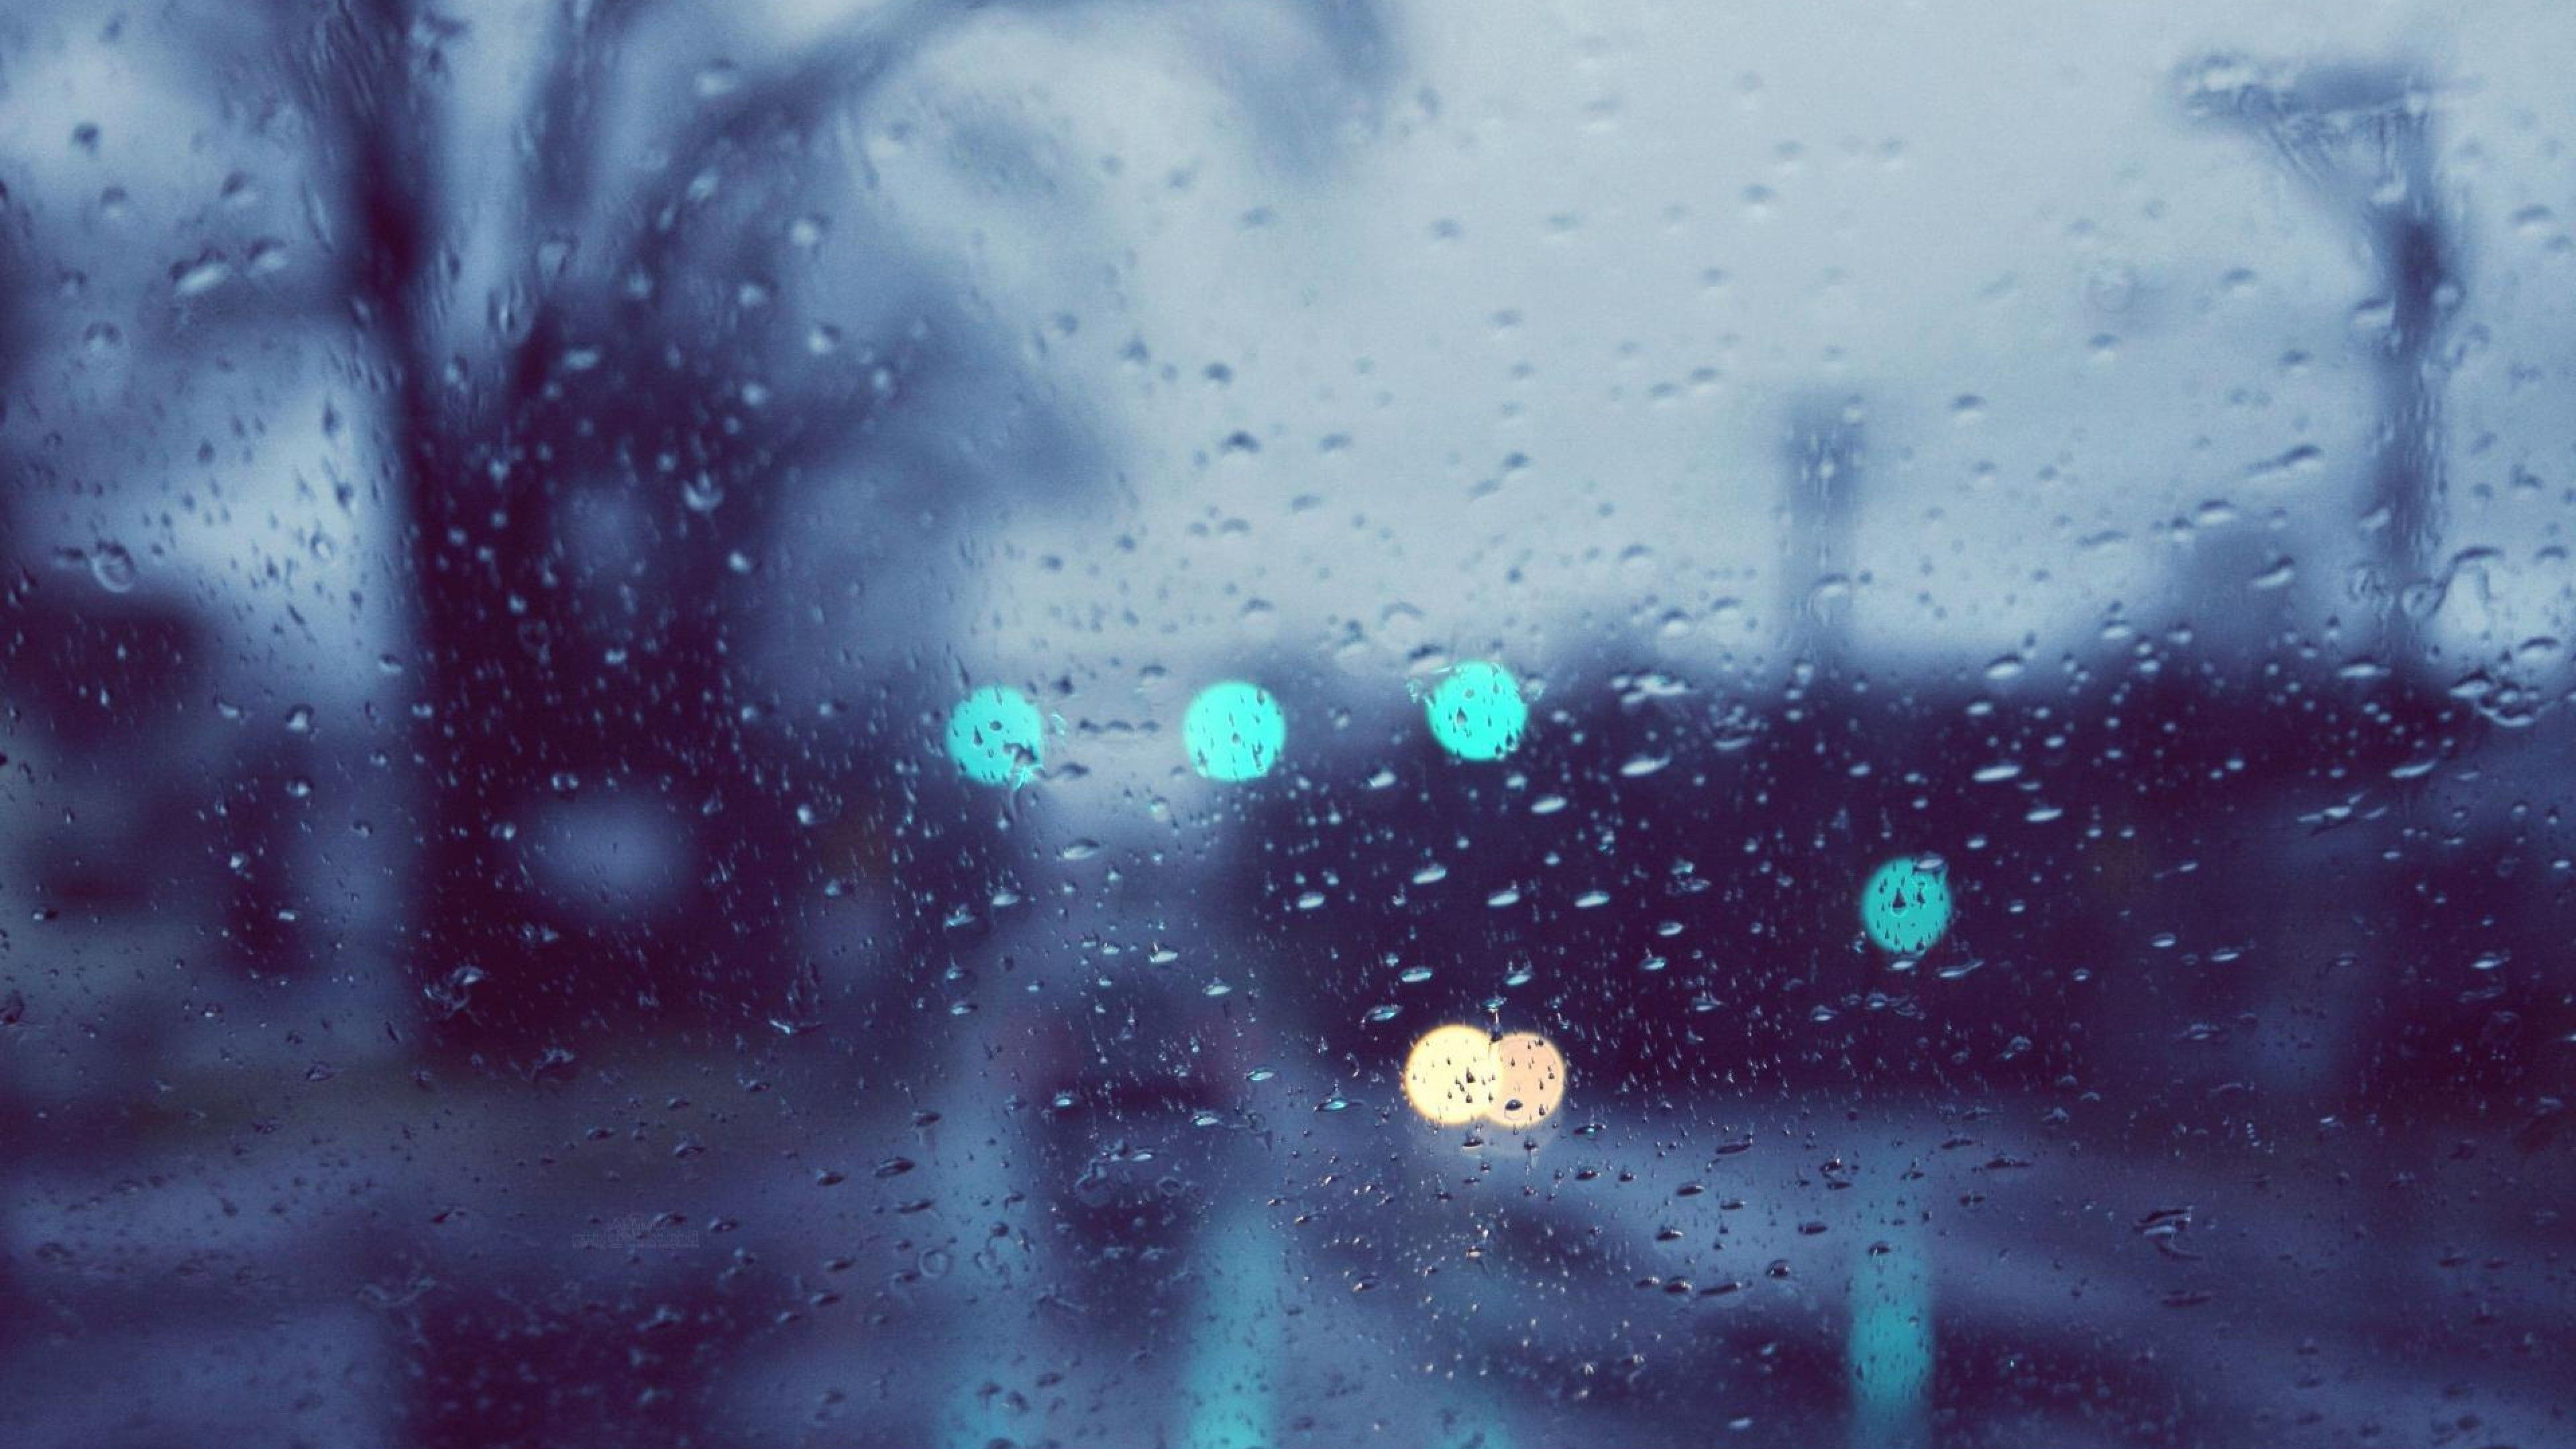 Rain Glare Glass Drops4k Wallpapers Rain Wallpapers Scenery Wallpaper Nature Wallpaper